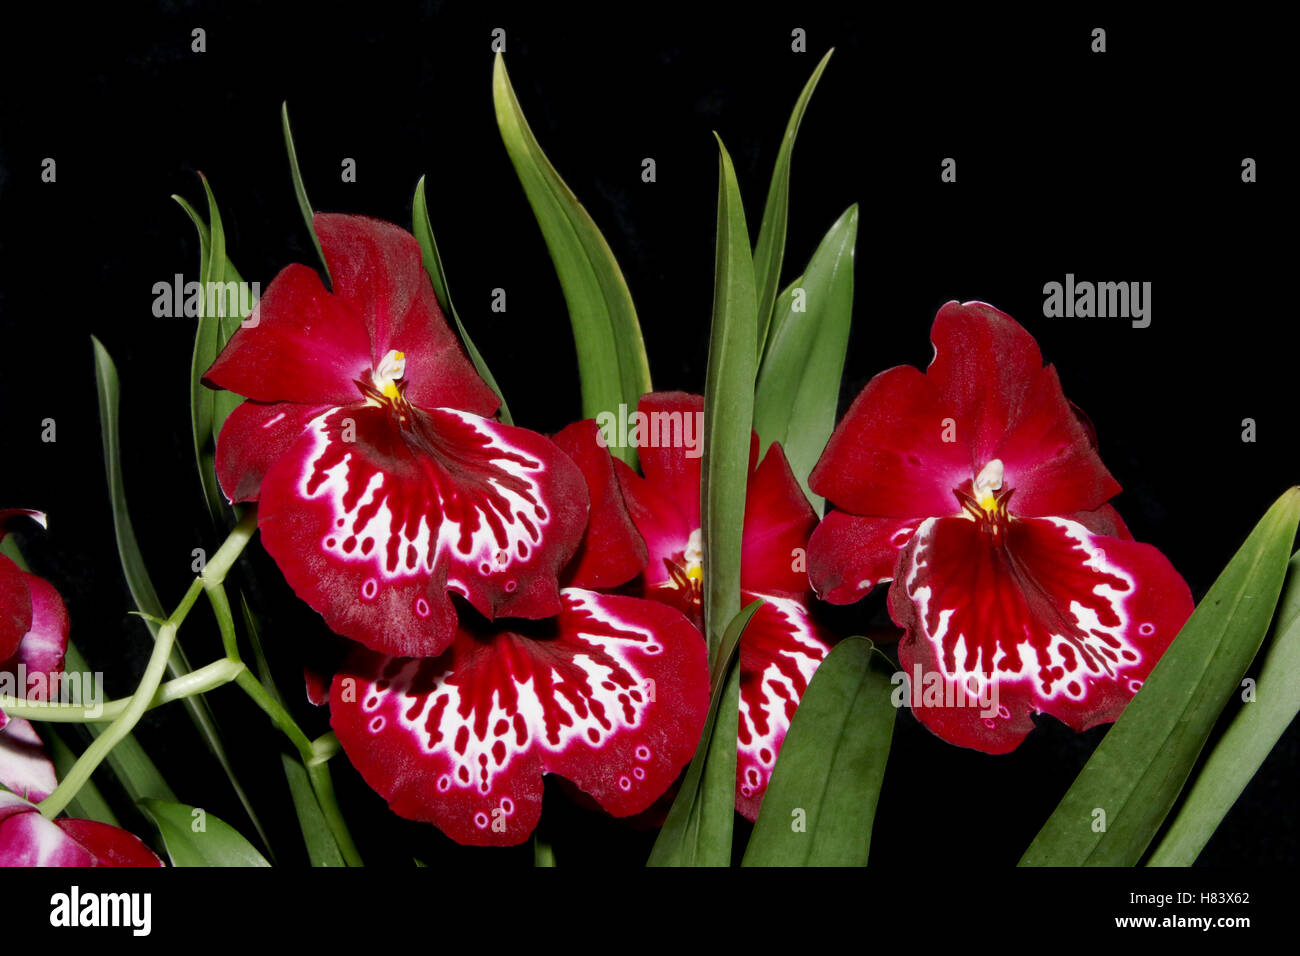 Miltoniopsis Echo Bay. Miltoniopsis Woodlands x Miltoniopsis Rose Bay. Orchid flower show. By the Miami Valley Orchid - Stock Image